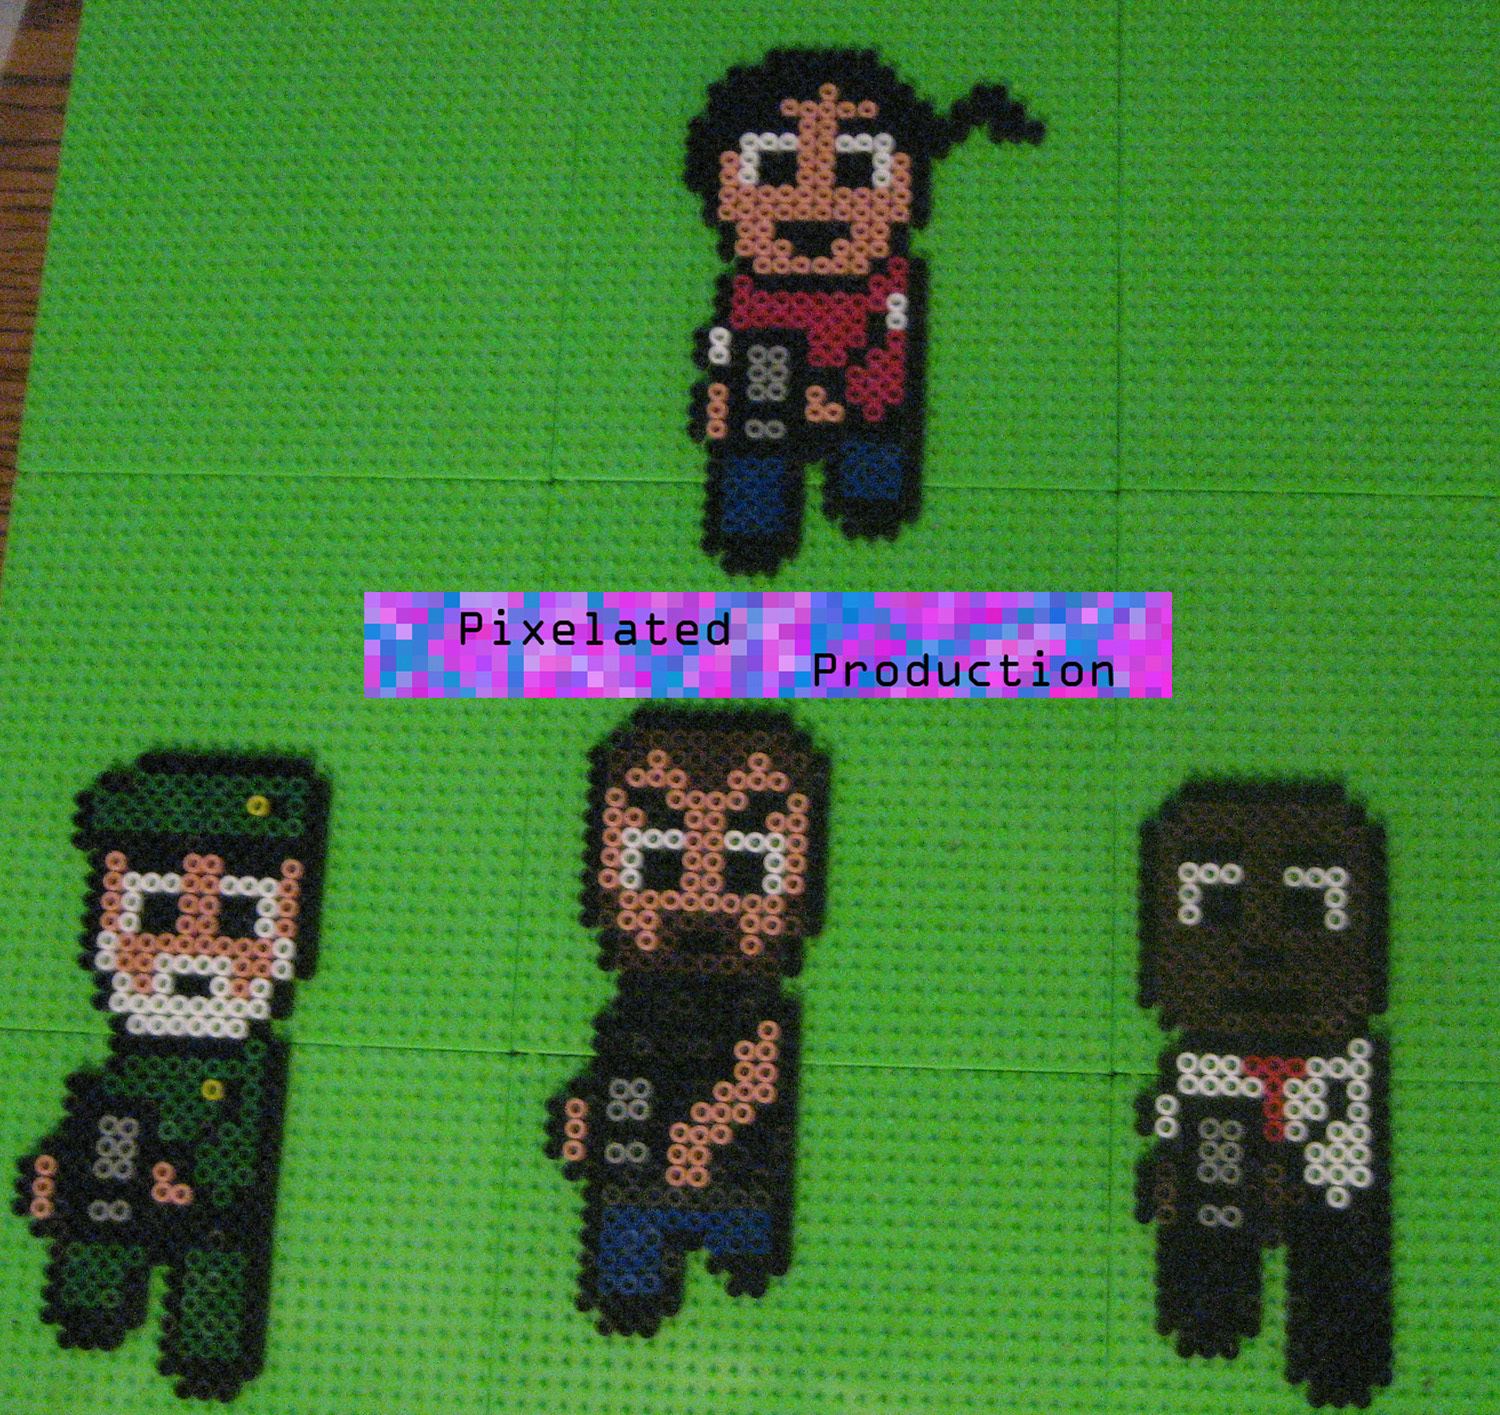 L4D Bead Art 의해 Pixelated Production